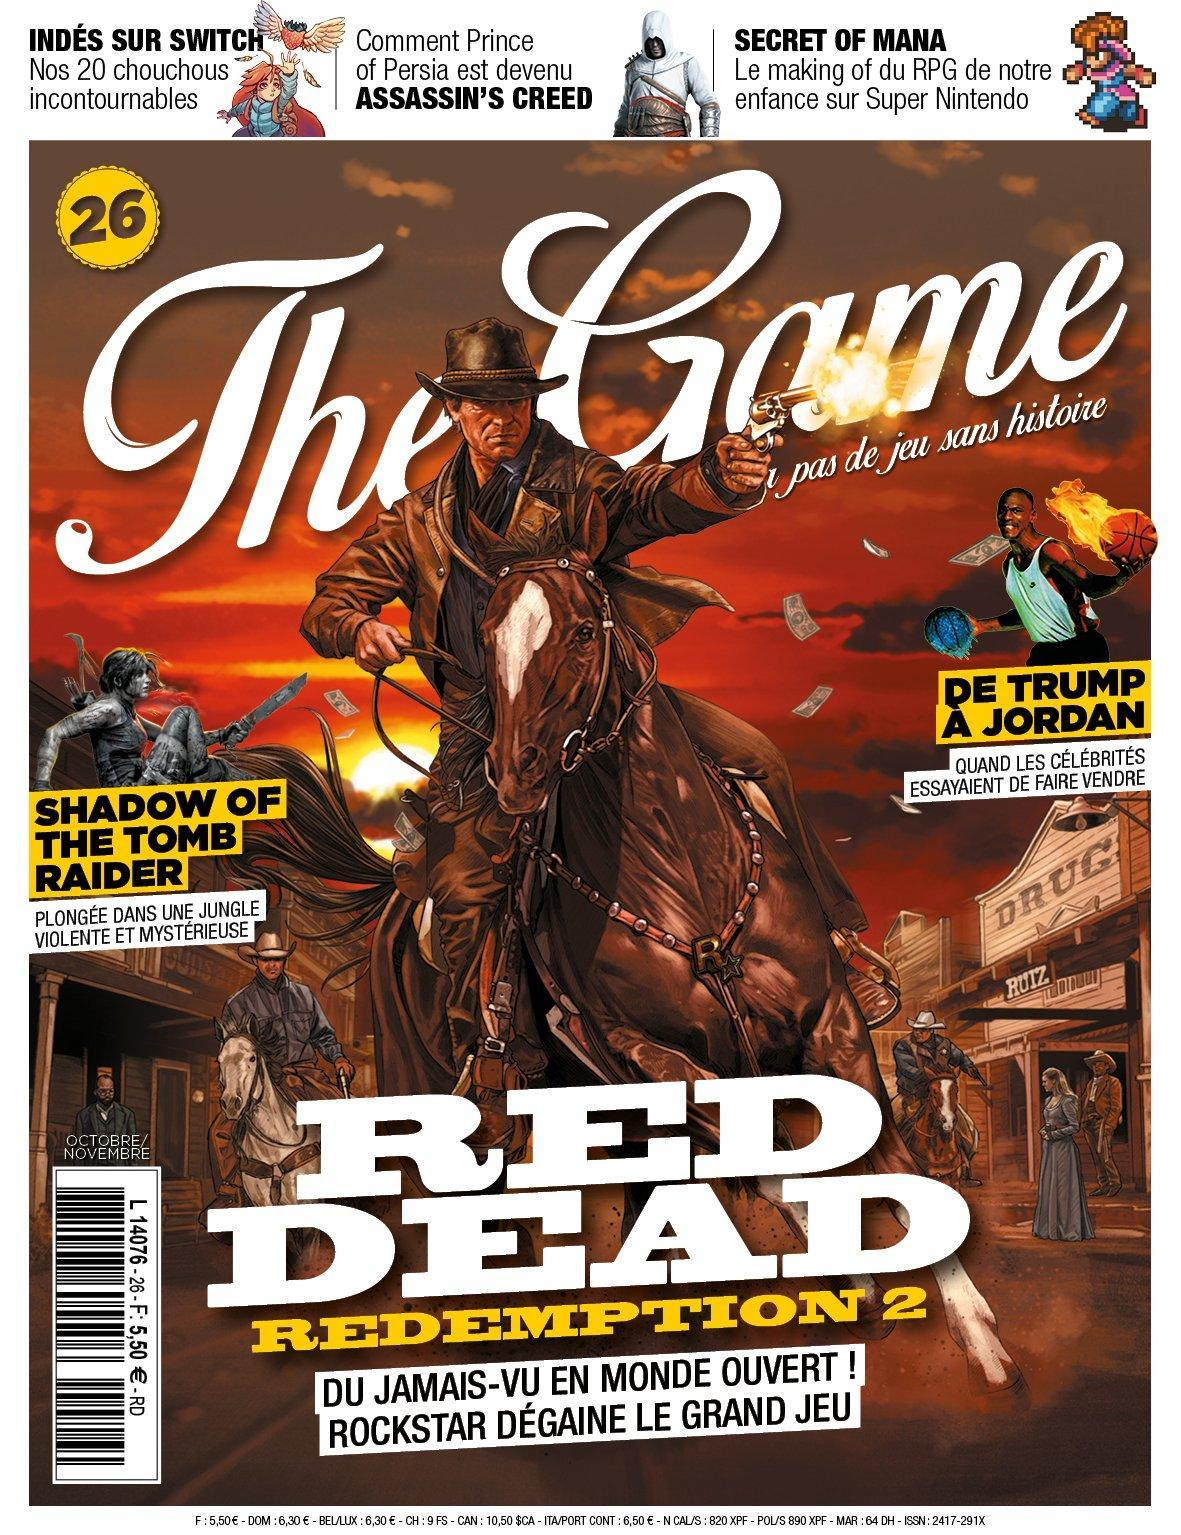 Red Dead Redemption 2 cover from French Game Magazine